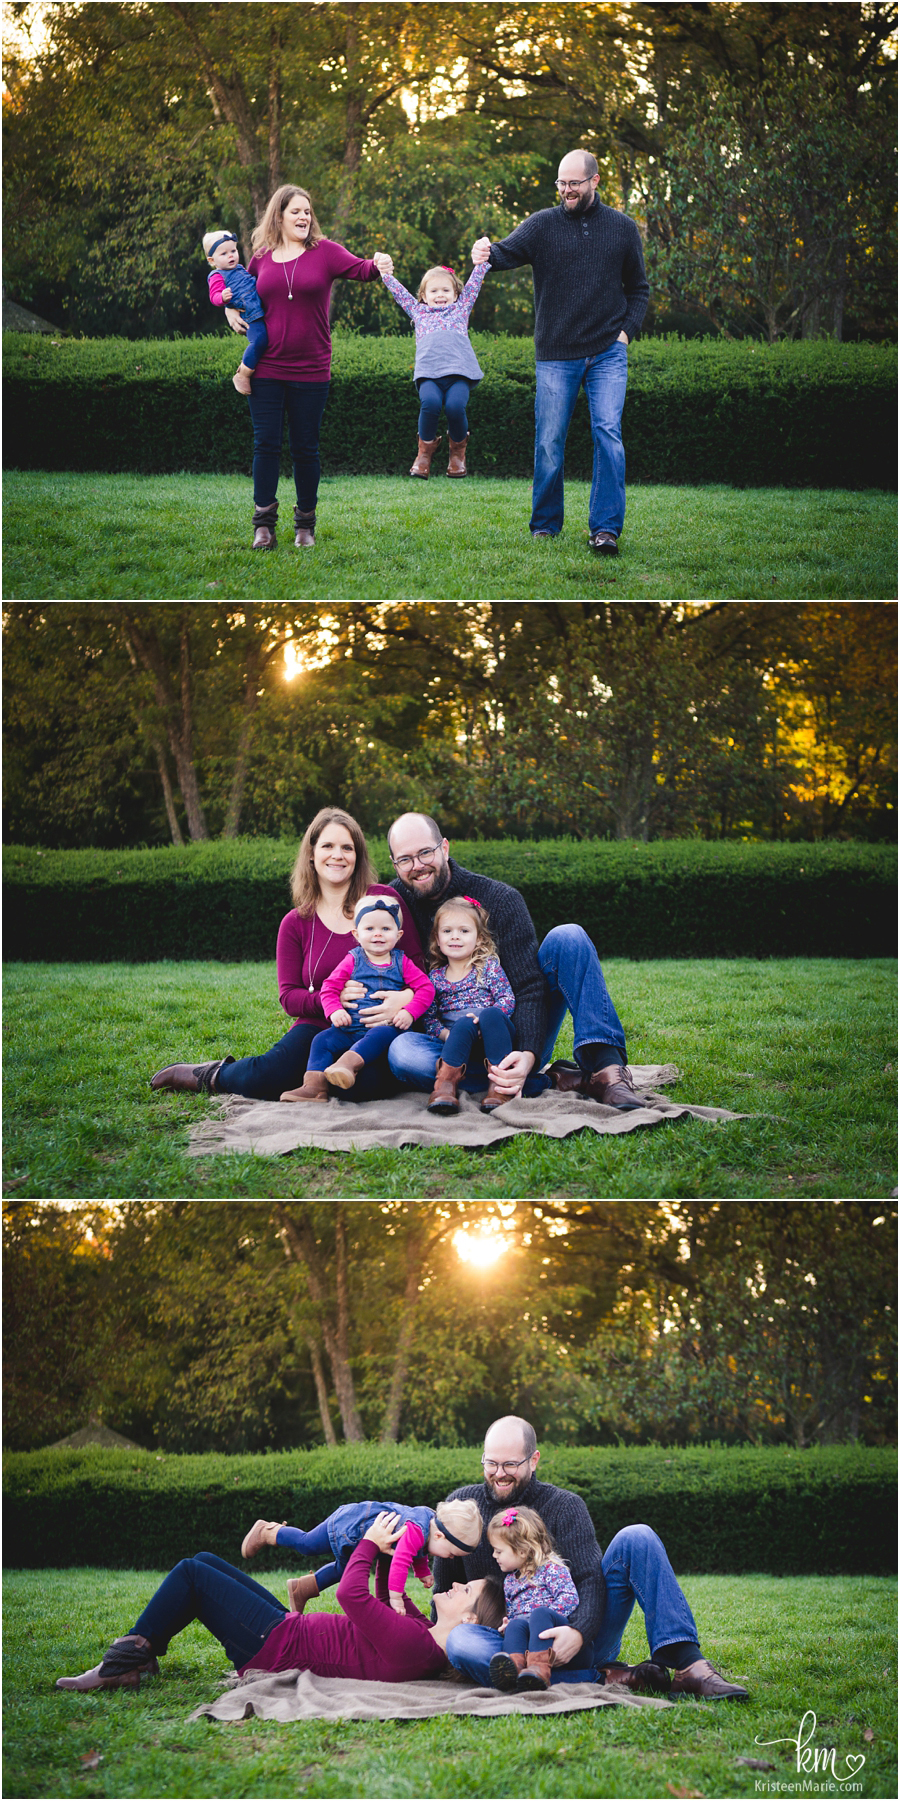 beautiful light on a Fall day for family pictures - what great posing ideas!